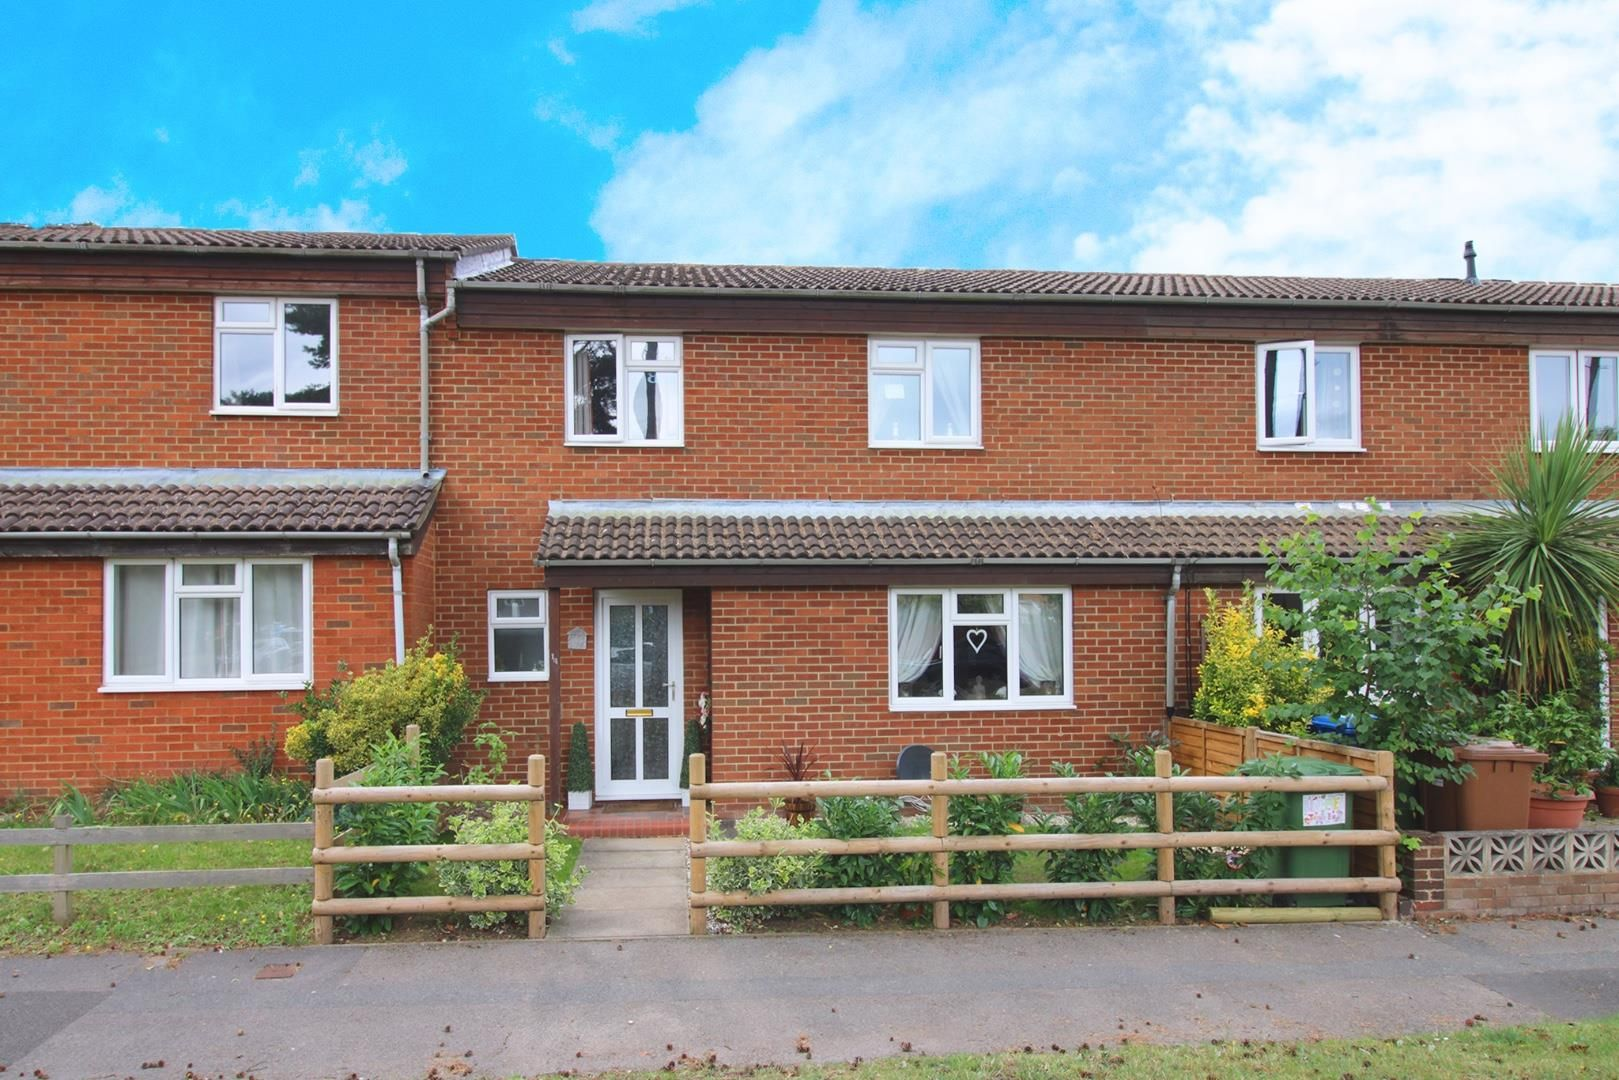 3 bed house for sale in Crown Wood, RG12